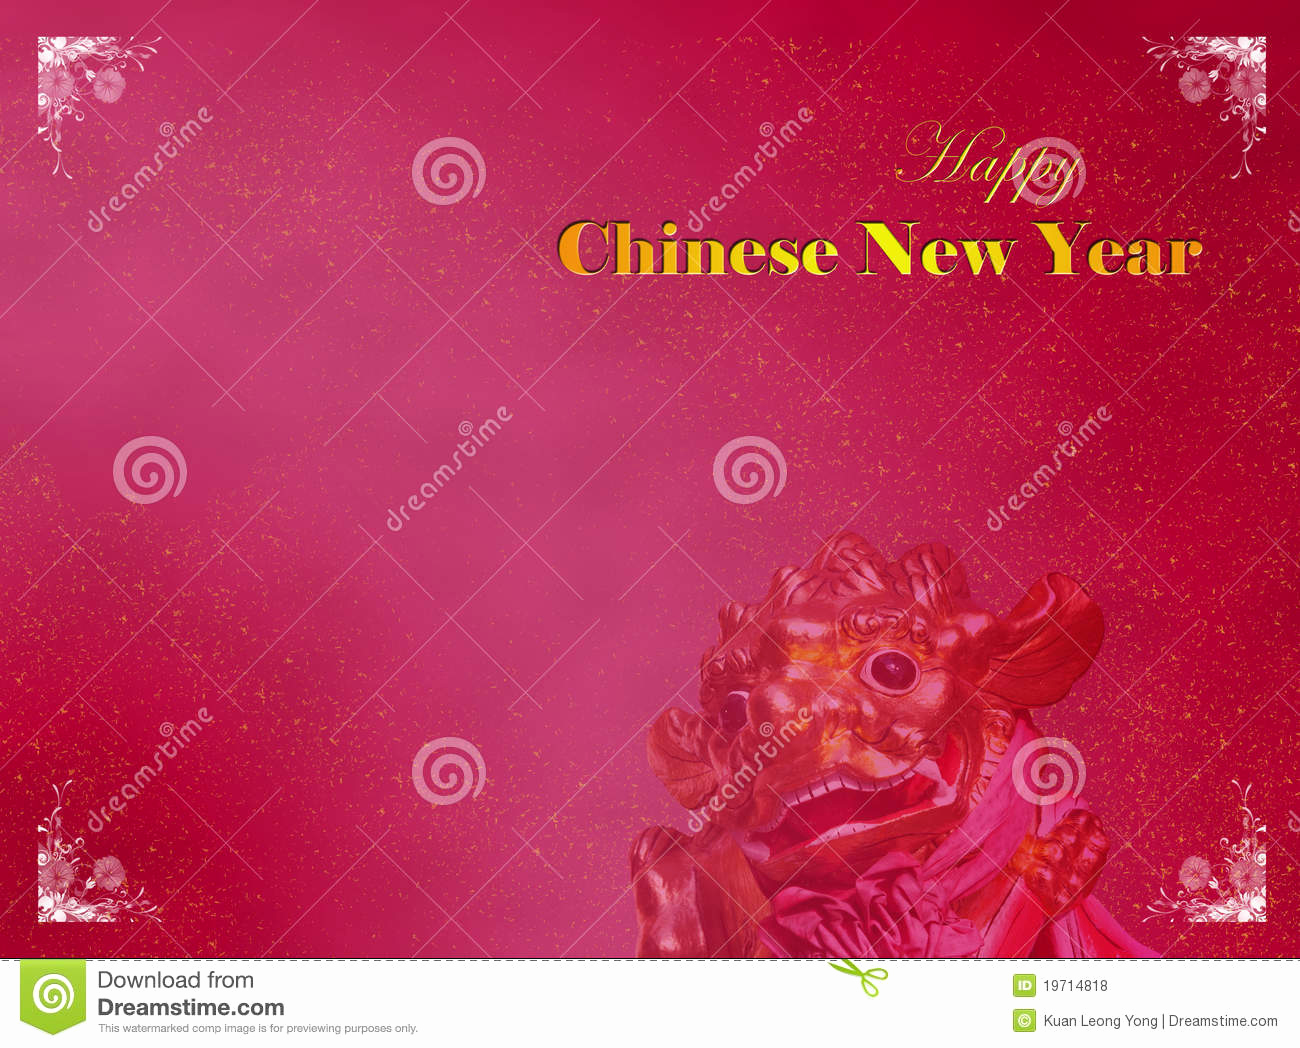 New Year Card Template Beautiful Chinese New Year Card Template Royalty Free Stock S